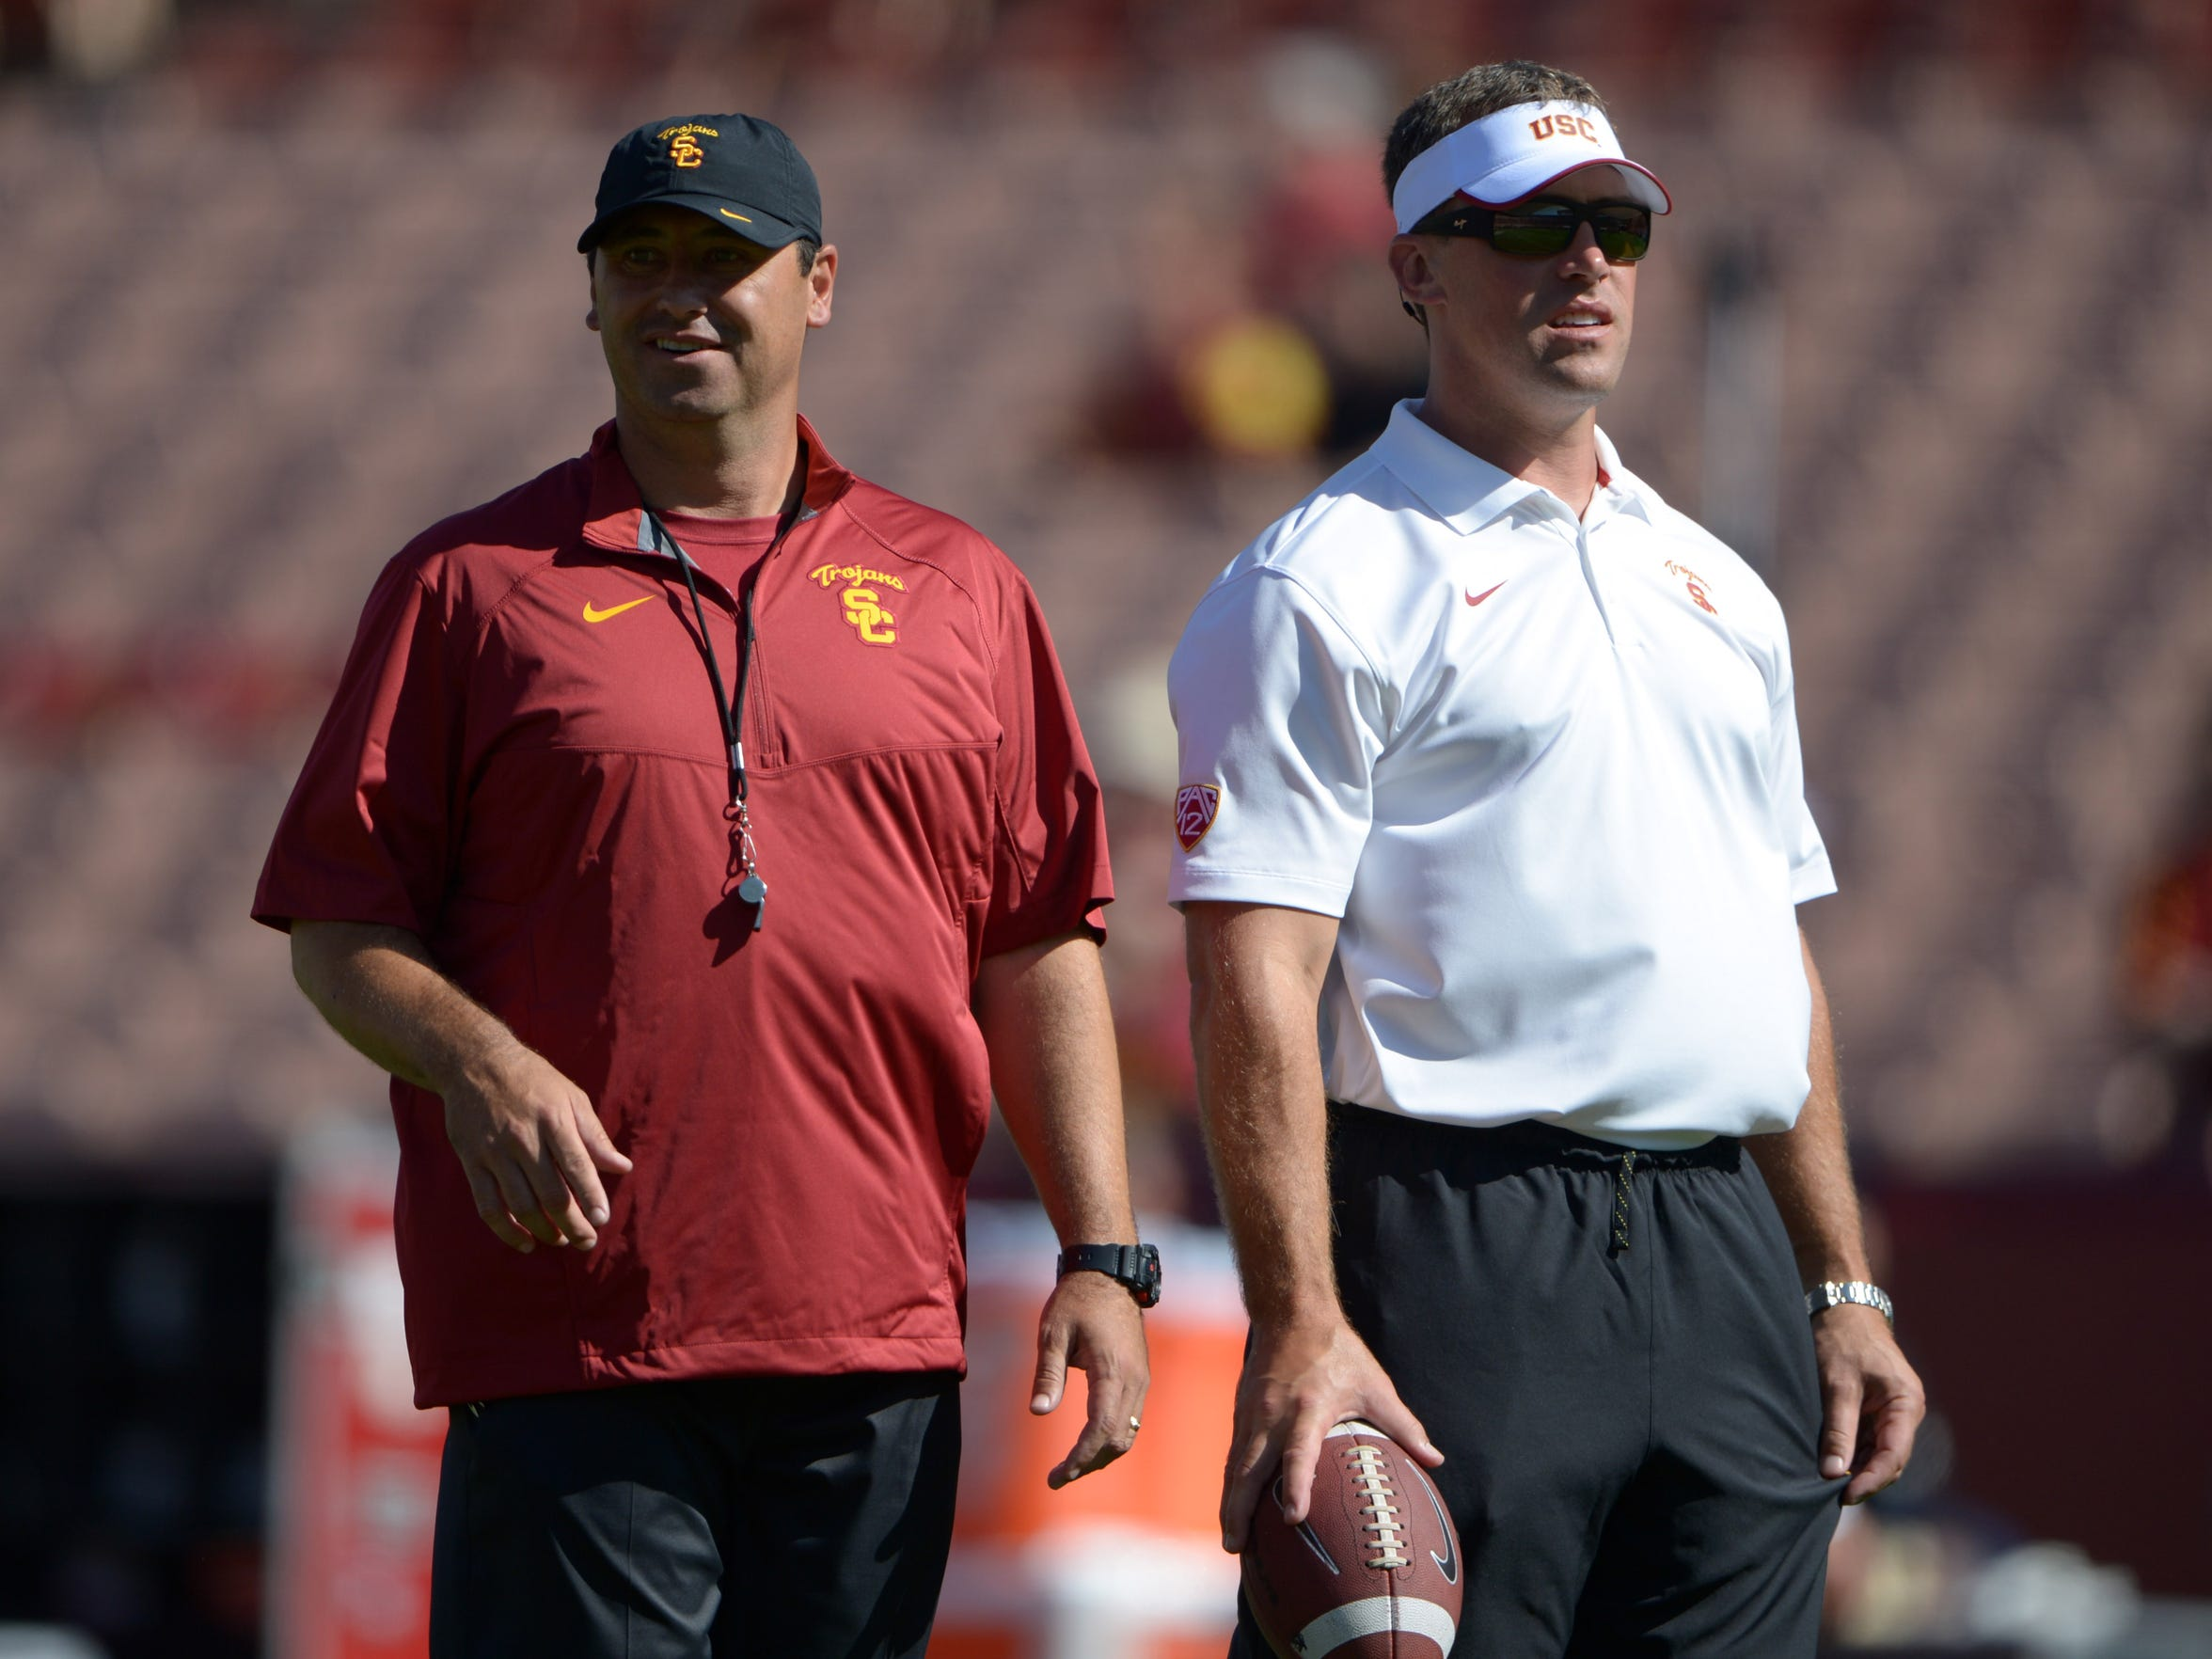 USC head coach Steve Sarkisian, left, hired Peter Sirmon as his linebackers coach. Sirmon eventually coached the defense during the team's 2015 bowl game after Sarkisian's firing.